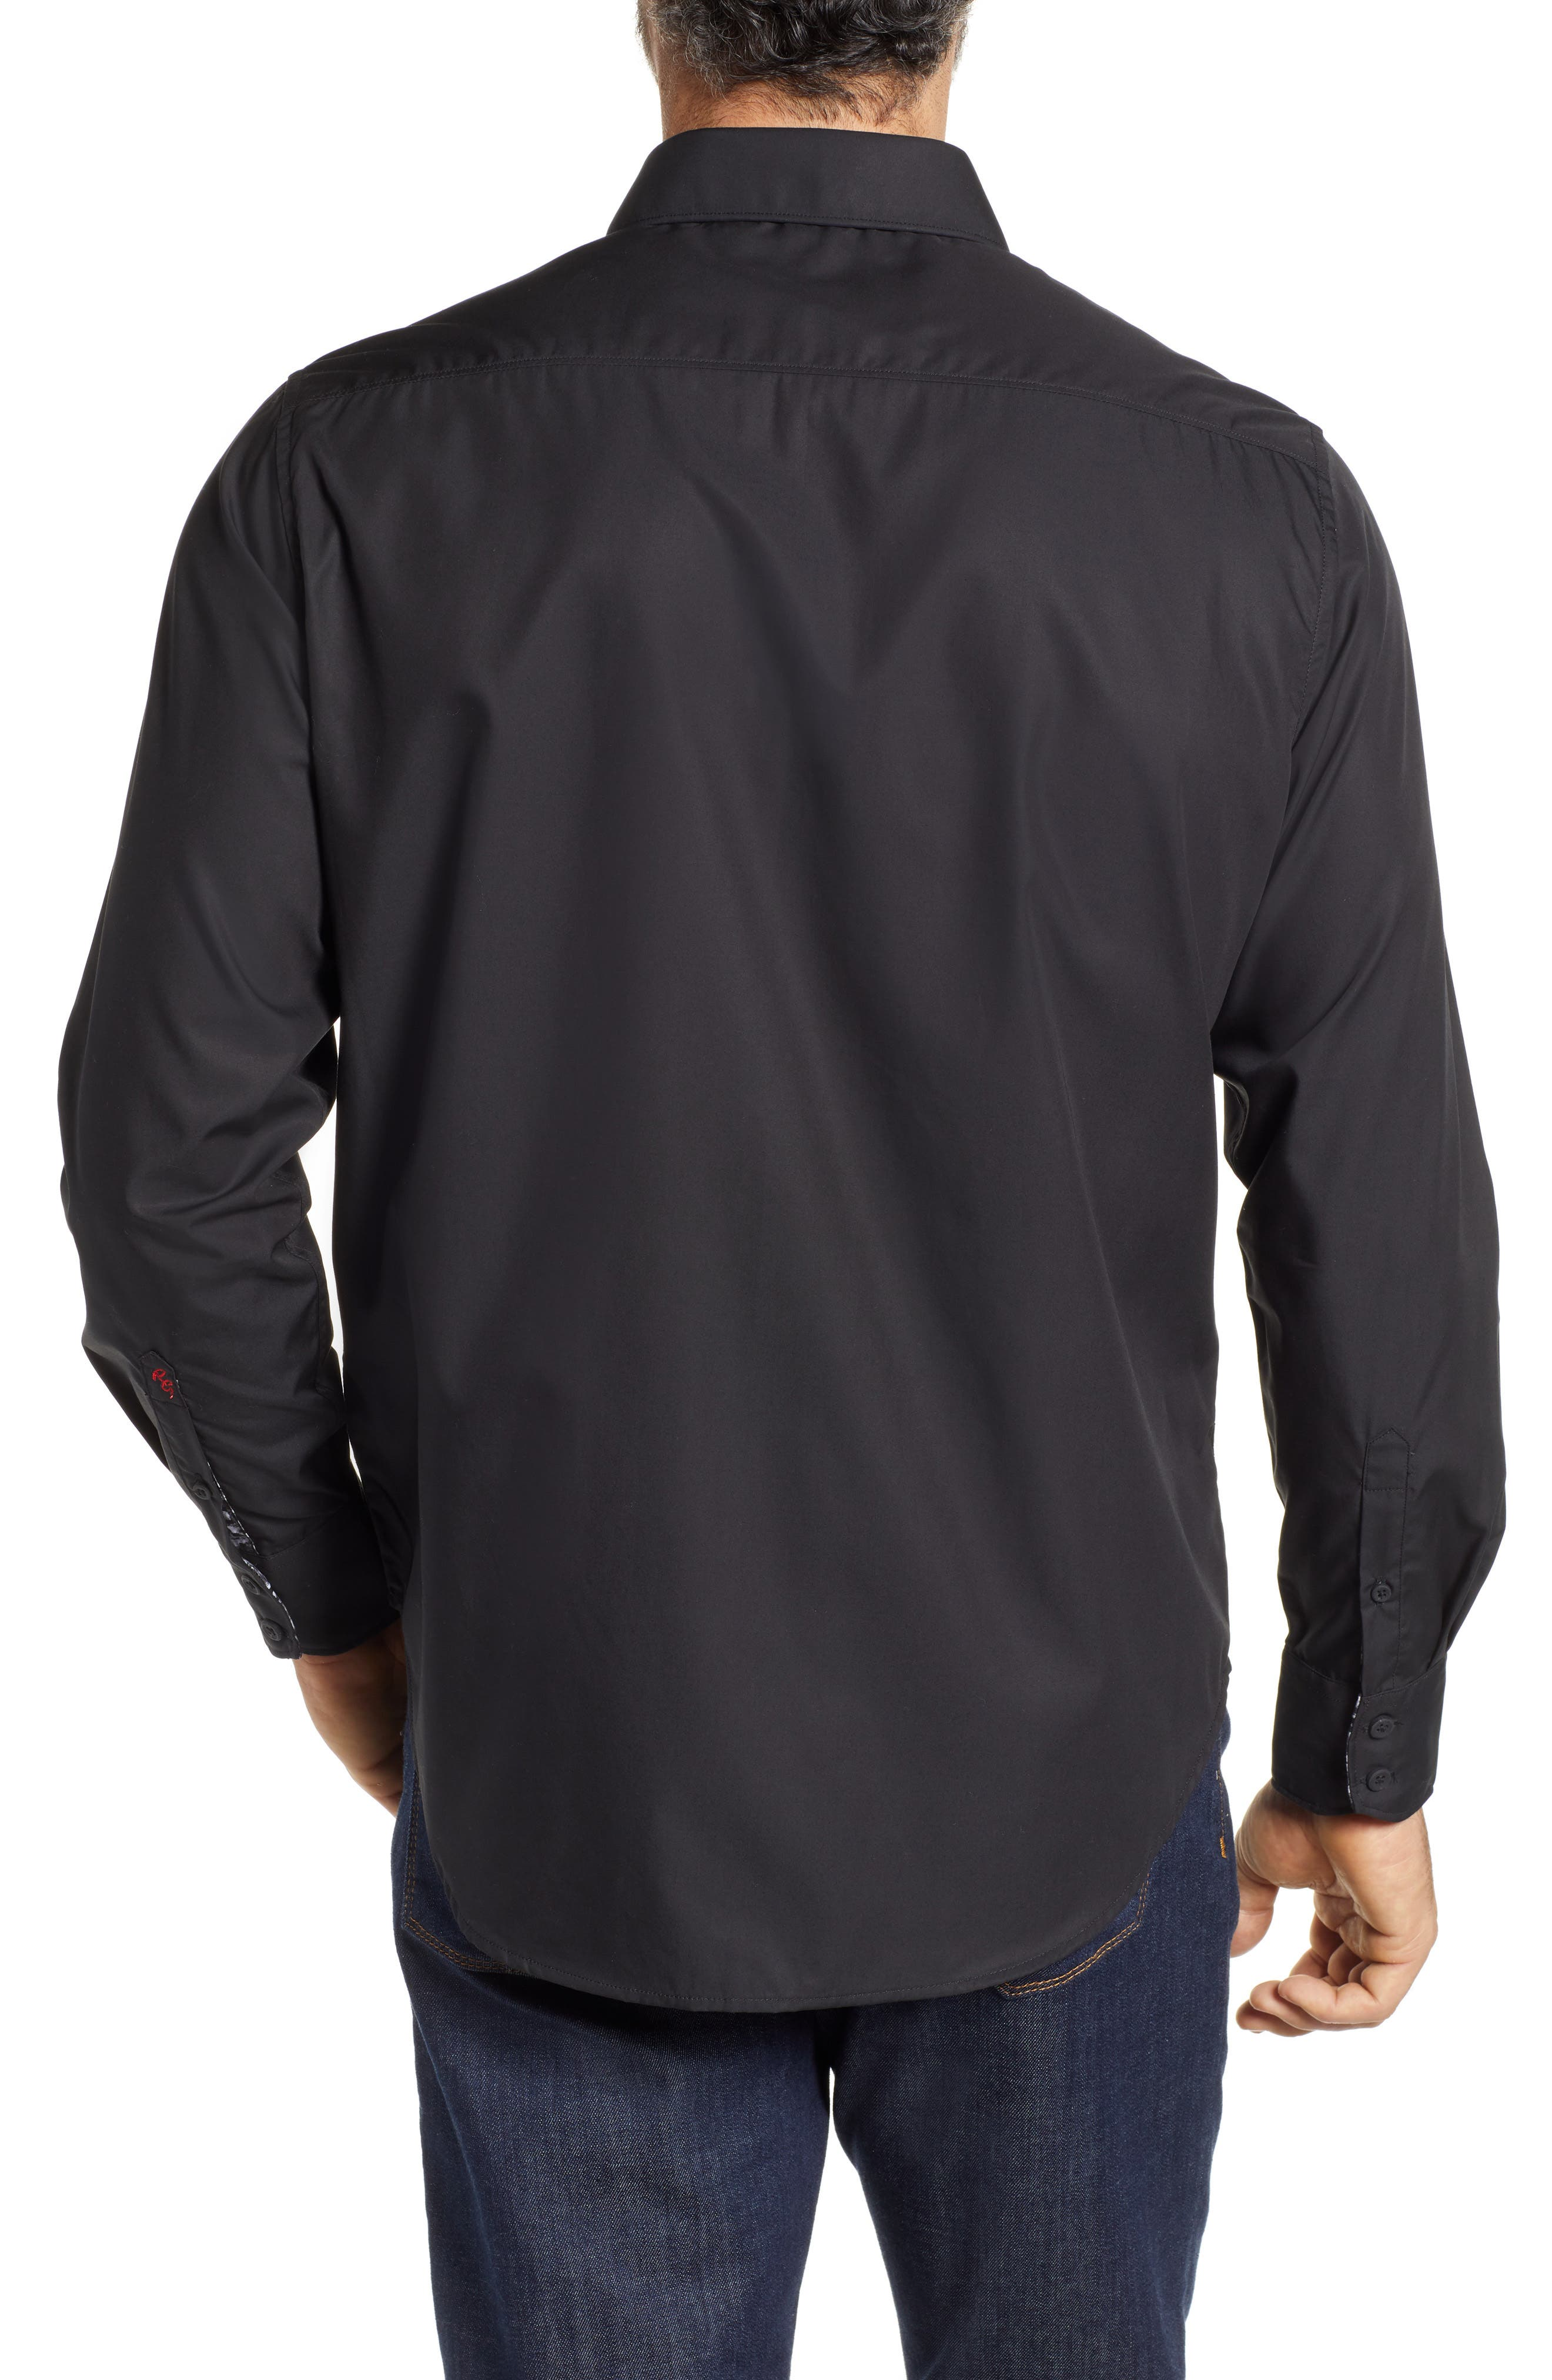 Onyx Classic Fit Embroidered Sport Shirt,                             Alternate thumbnail 2, color,                             001